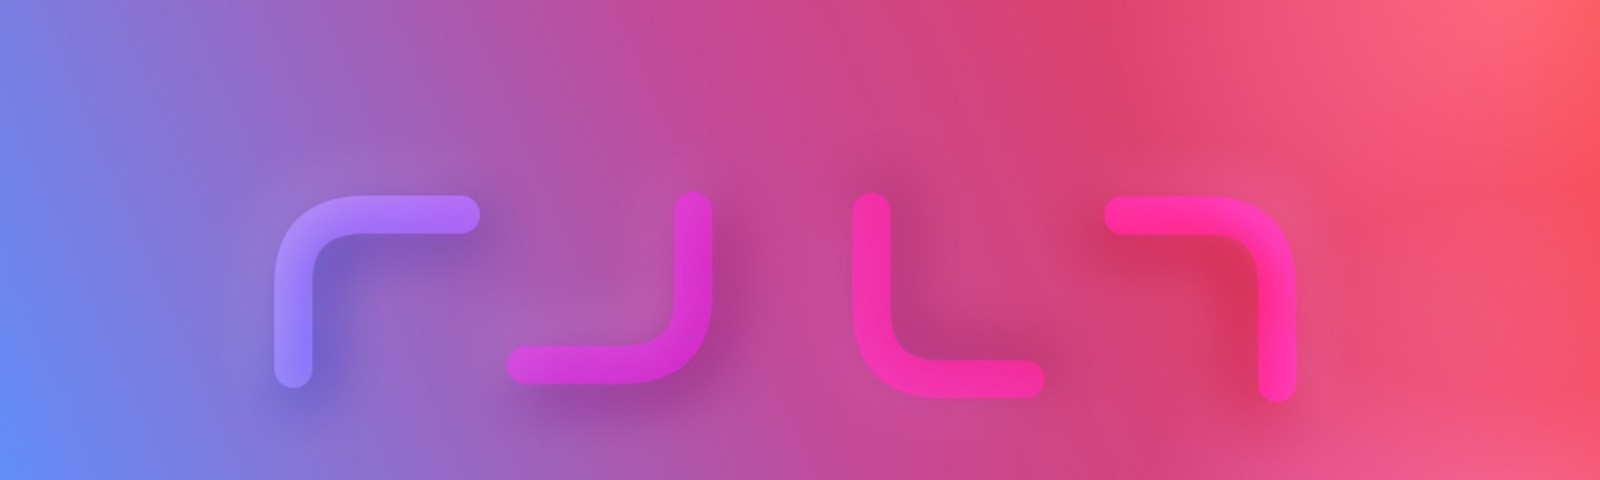 Outline shapes on a gradient background